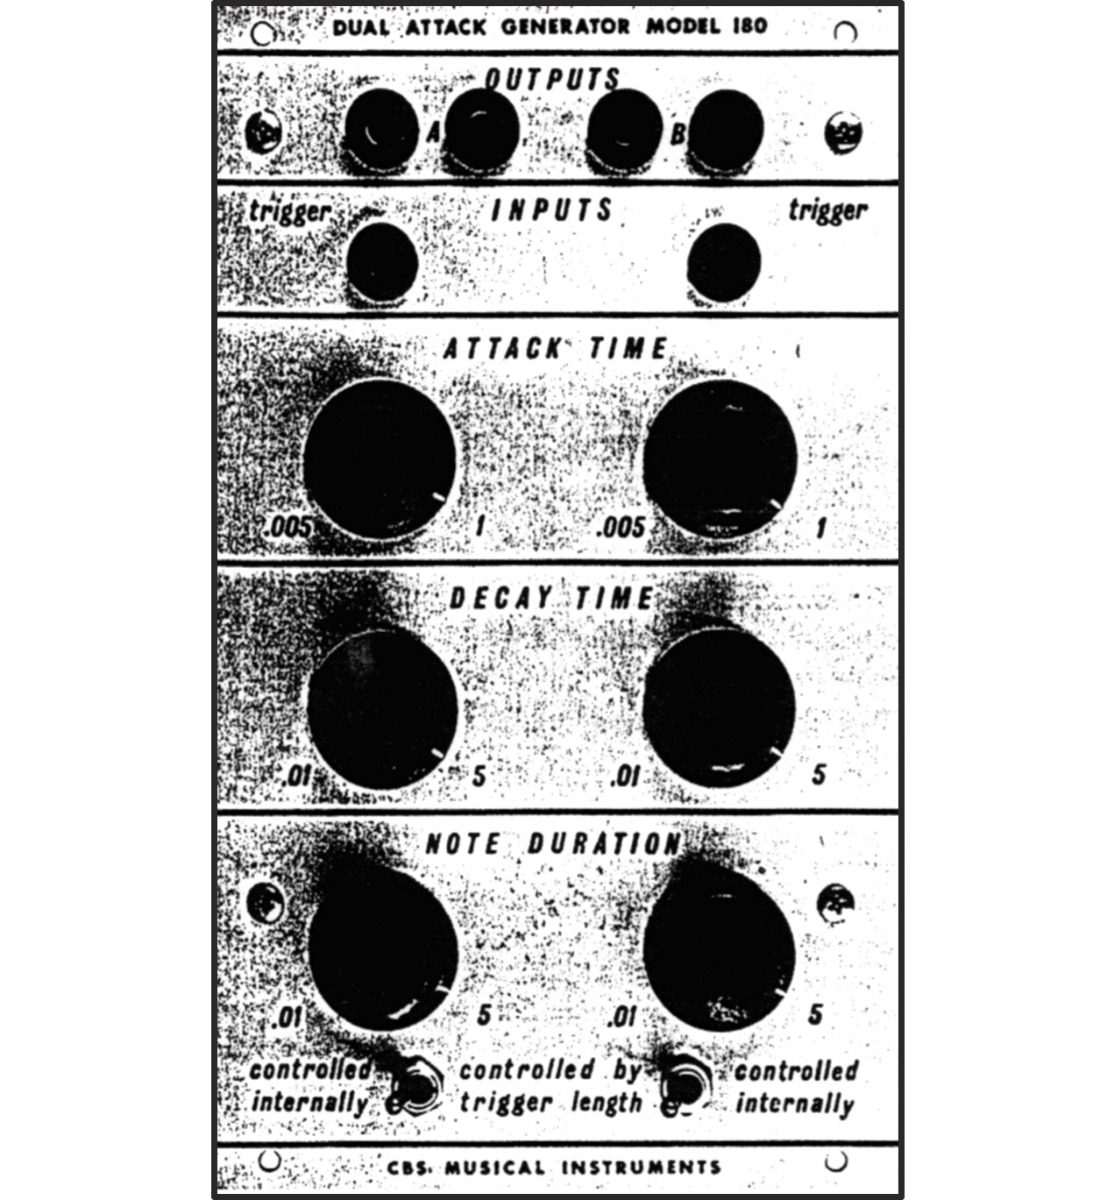 The 180 Dual Attack Generator, from the original CBS Musical Instruments Buchla catalog.